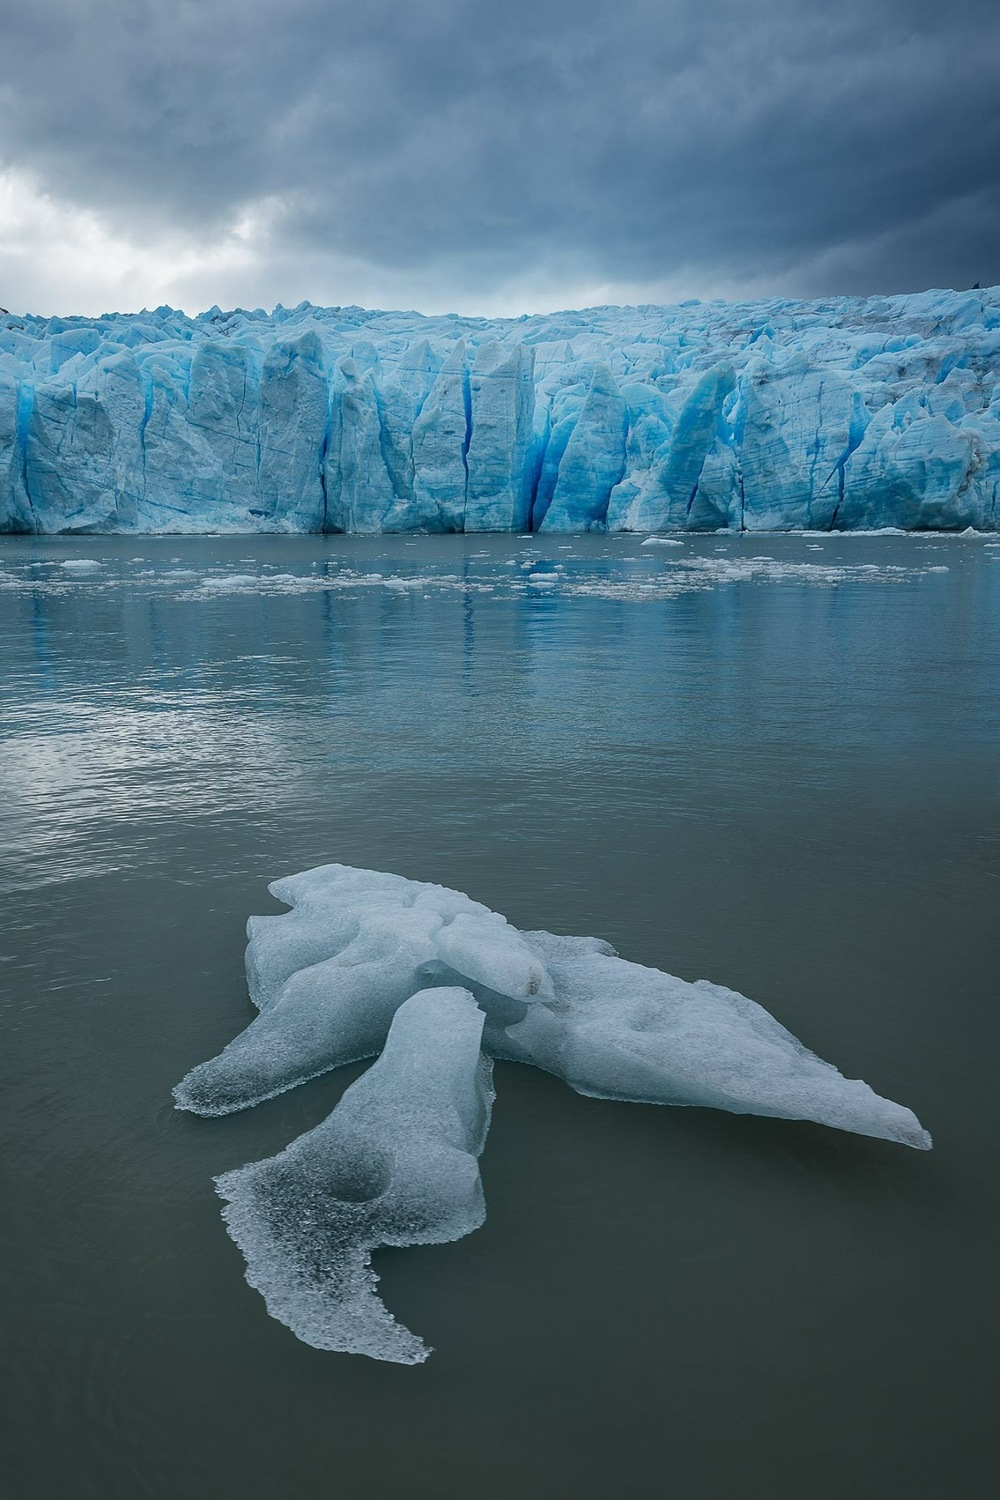 glacier grey patagonia jake anderson this world exists thisworldexists